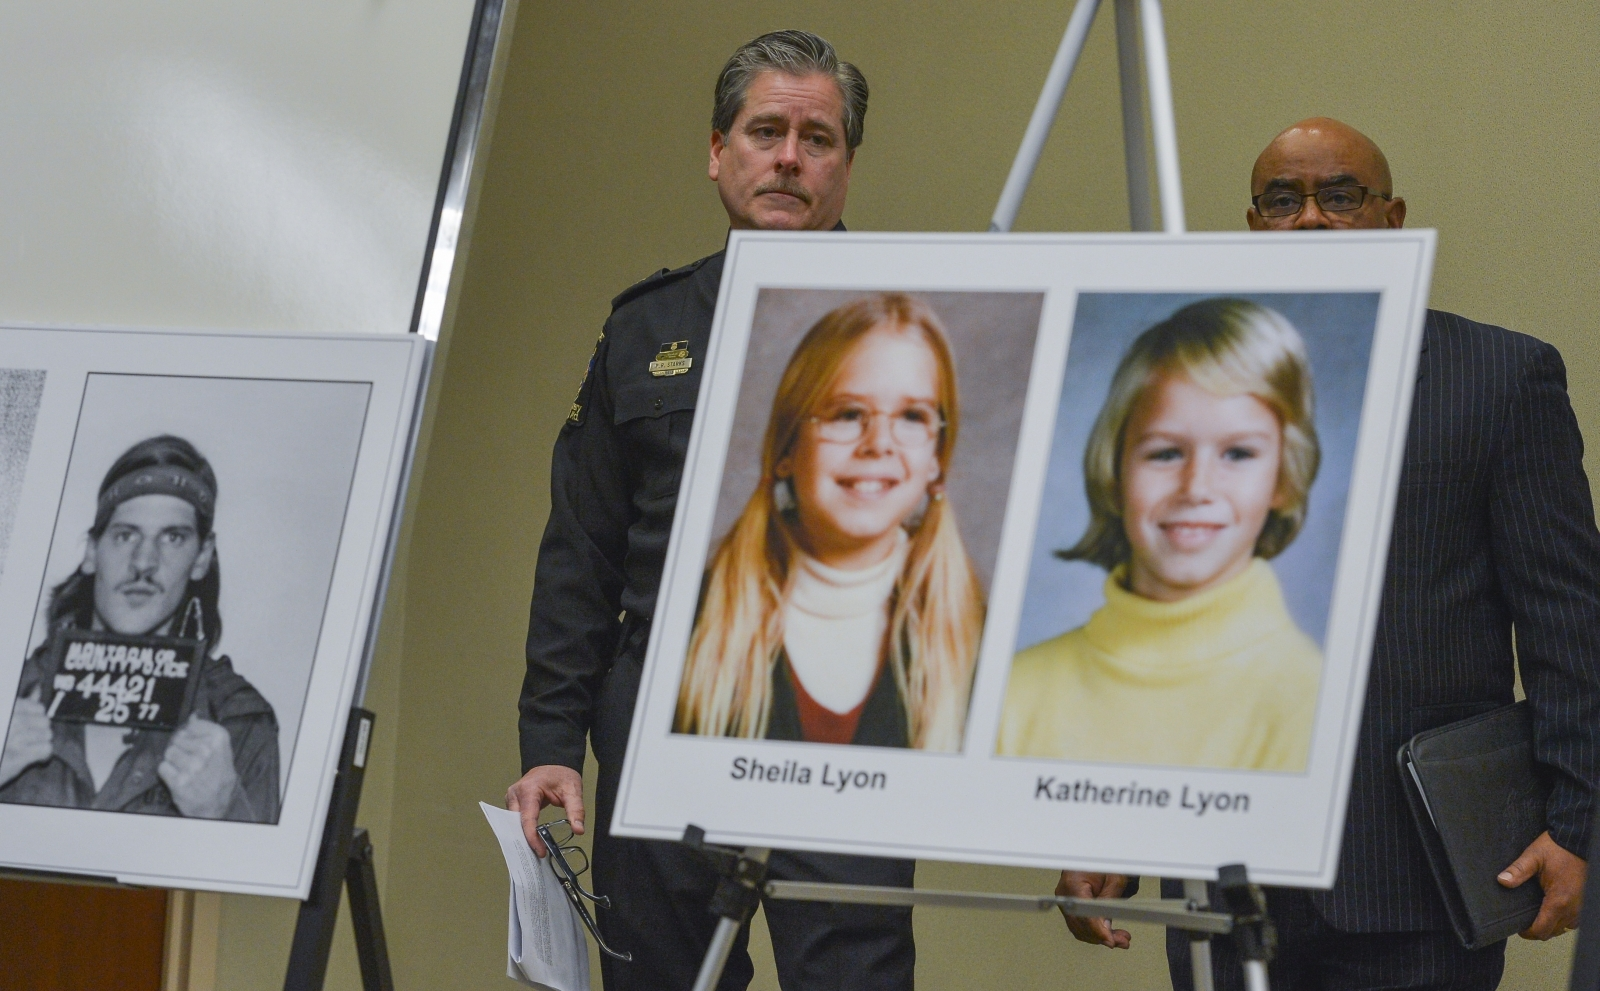 Montgomery County Police Captain Paul Starks, left, and Captain Marcus G. Jones stand behind a mug shot of Lloyd Lee Welch, Jr., who has now pleaded guilty to the murder of Katherine and Shelia Lyon, right, during a press conference in February 2014 in Ga